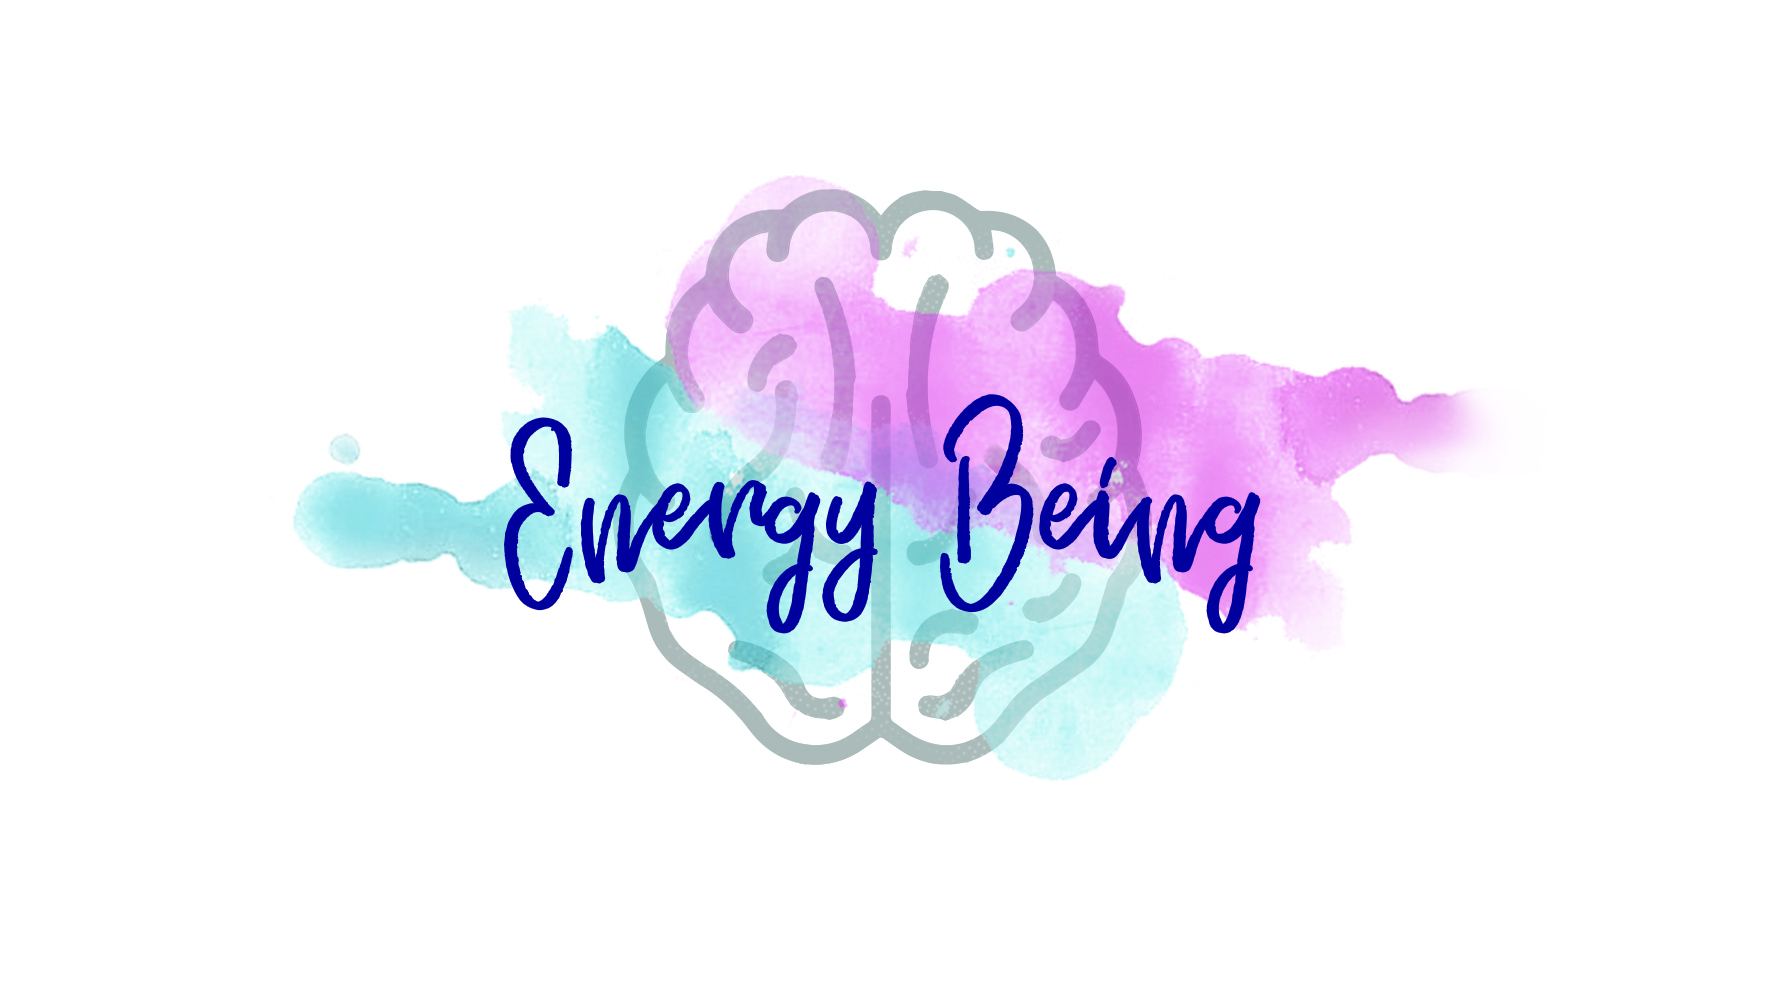 Christine Moran – Positive Energy Being